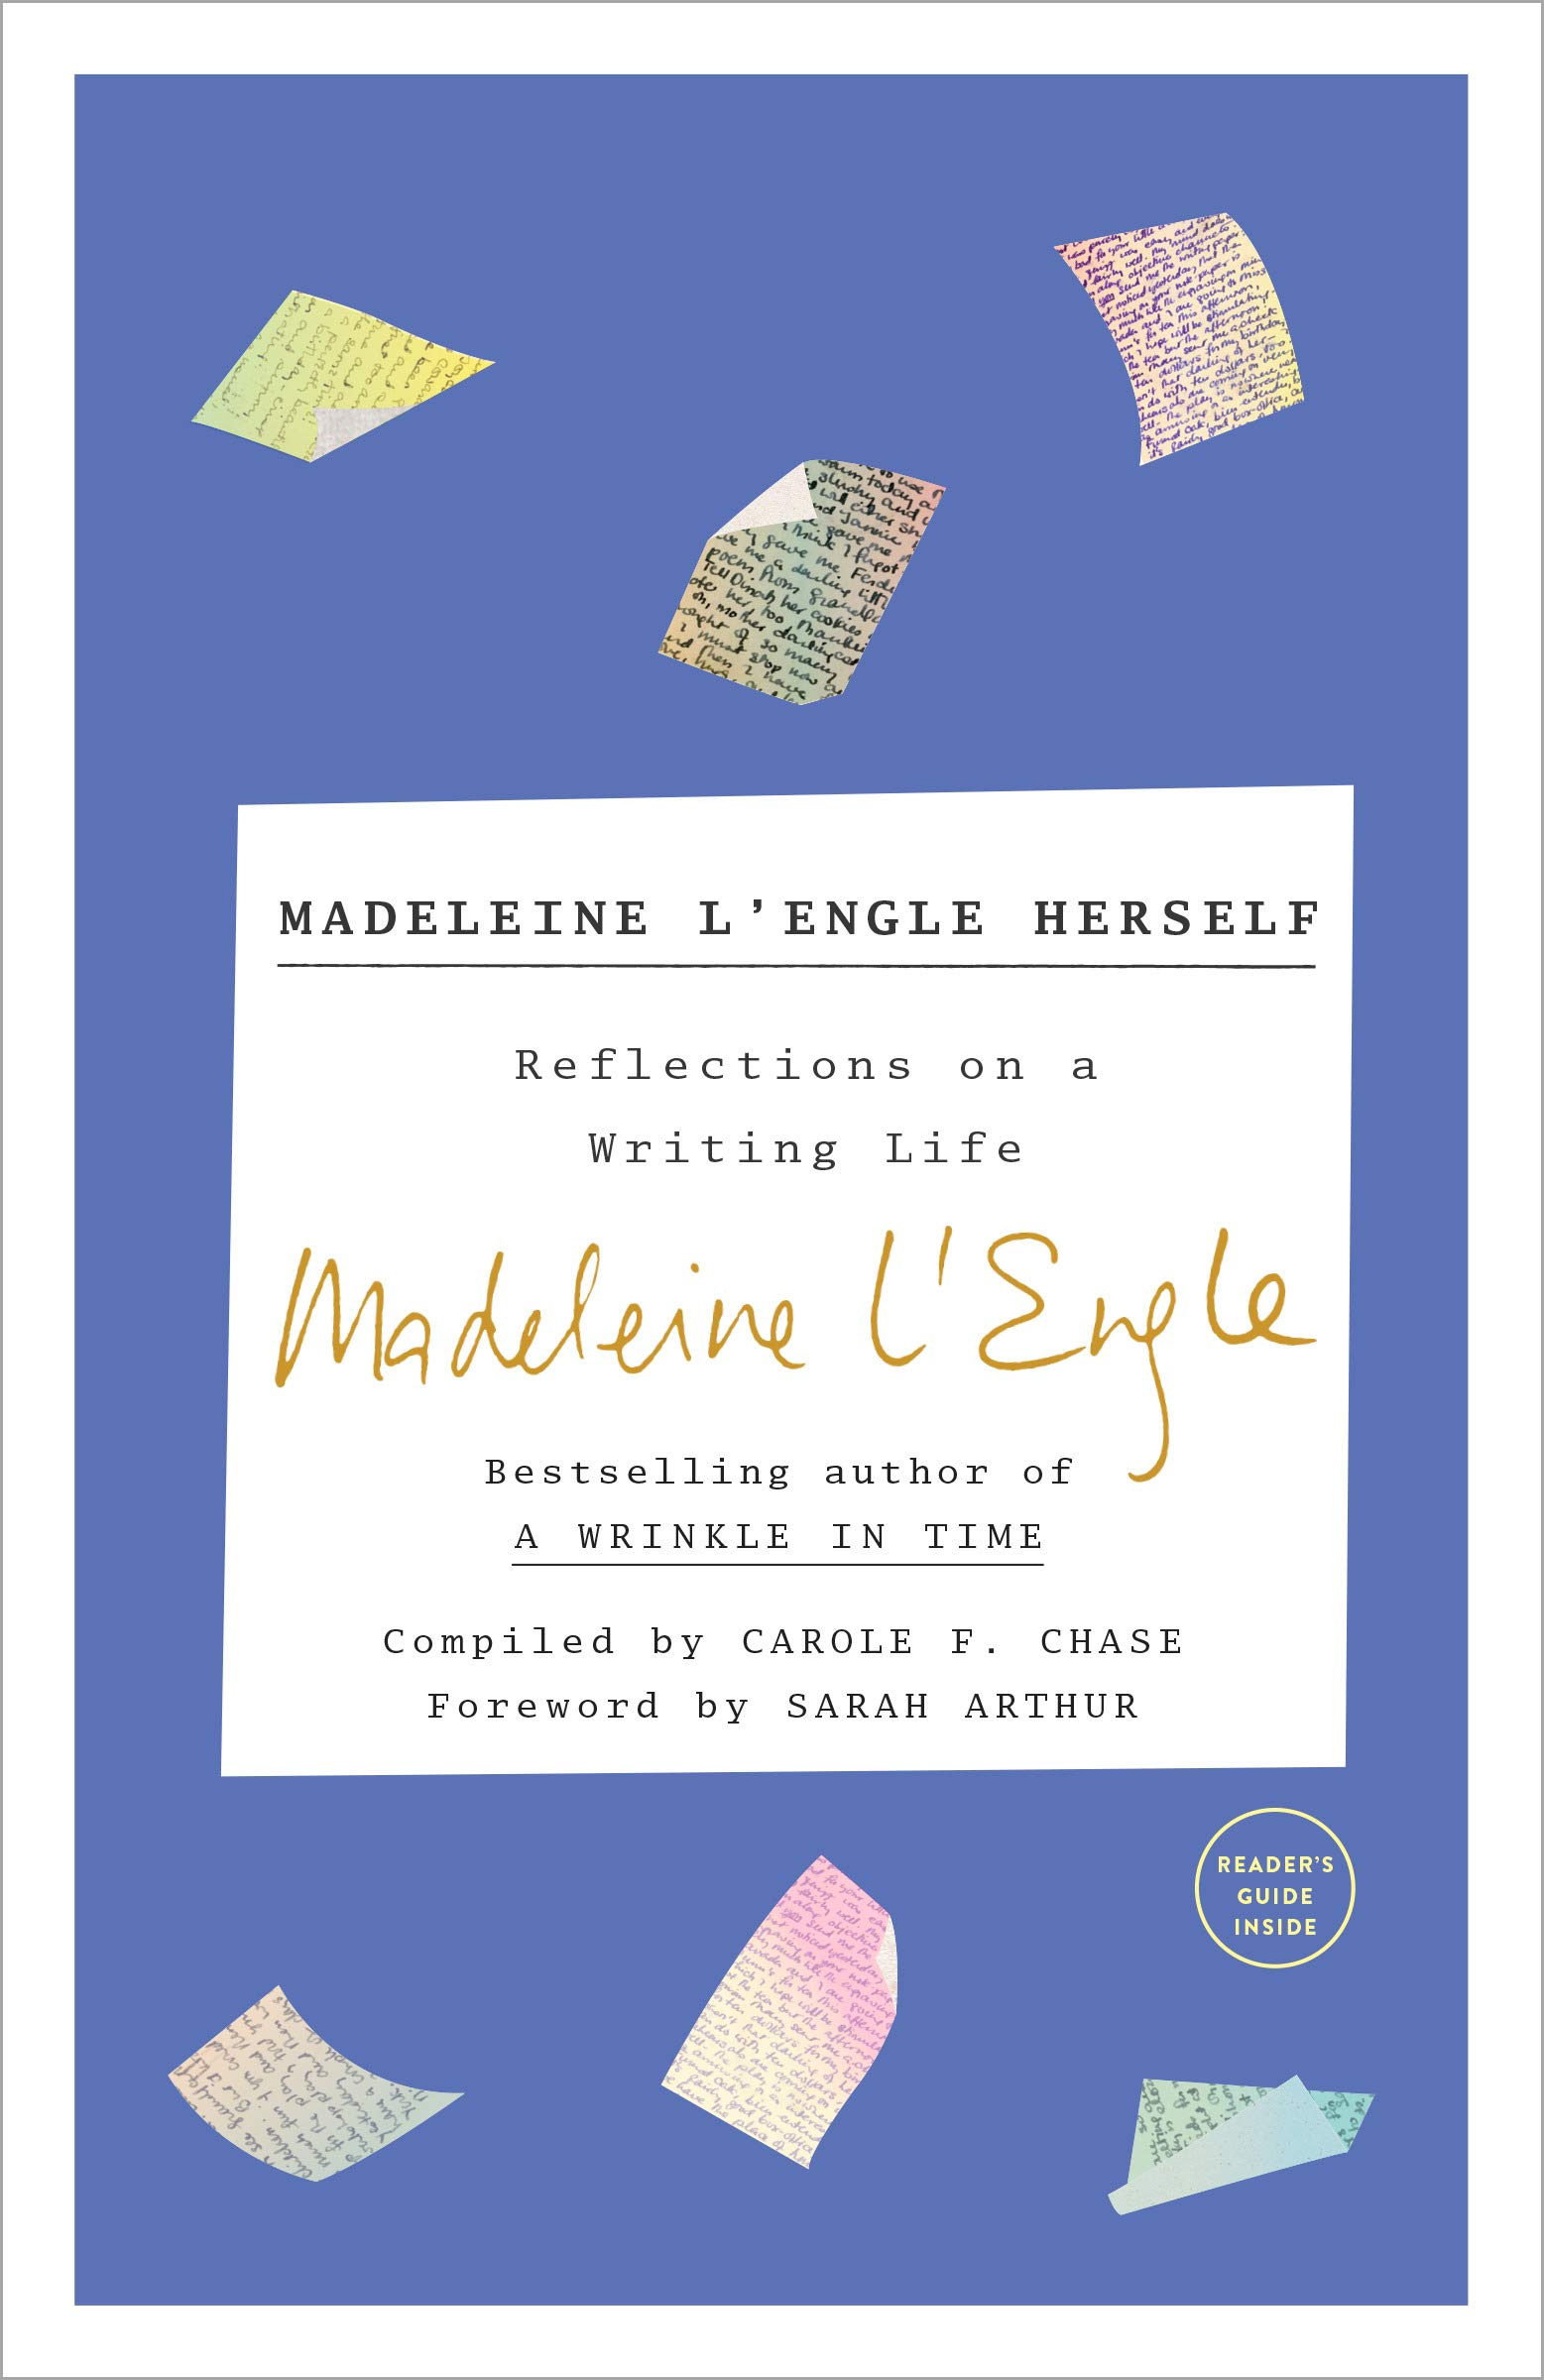 Madeleine L'Engle Herself: Reflections on a Writing Life by Convergent Books